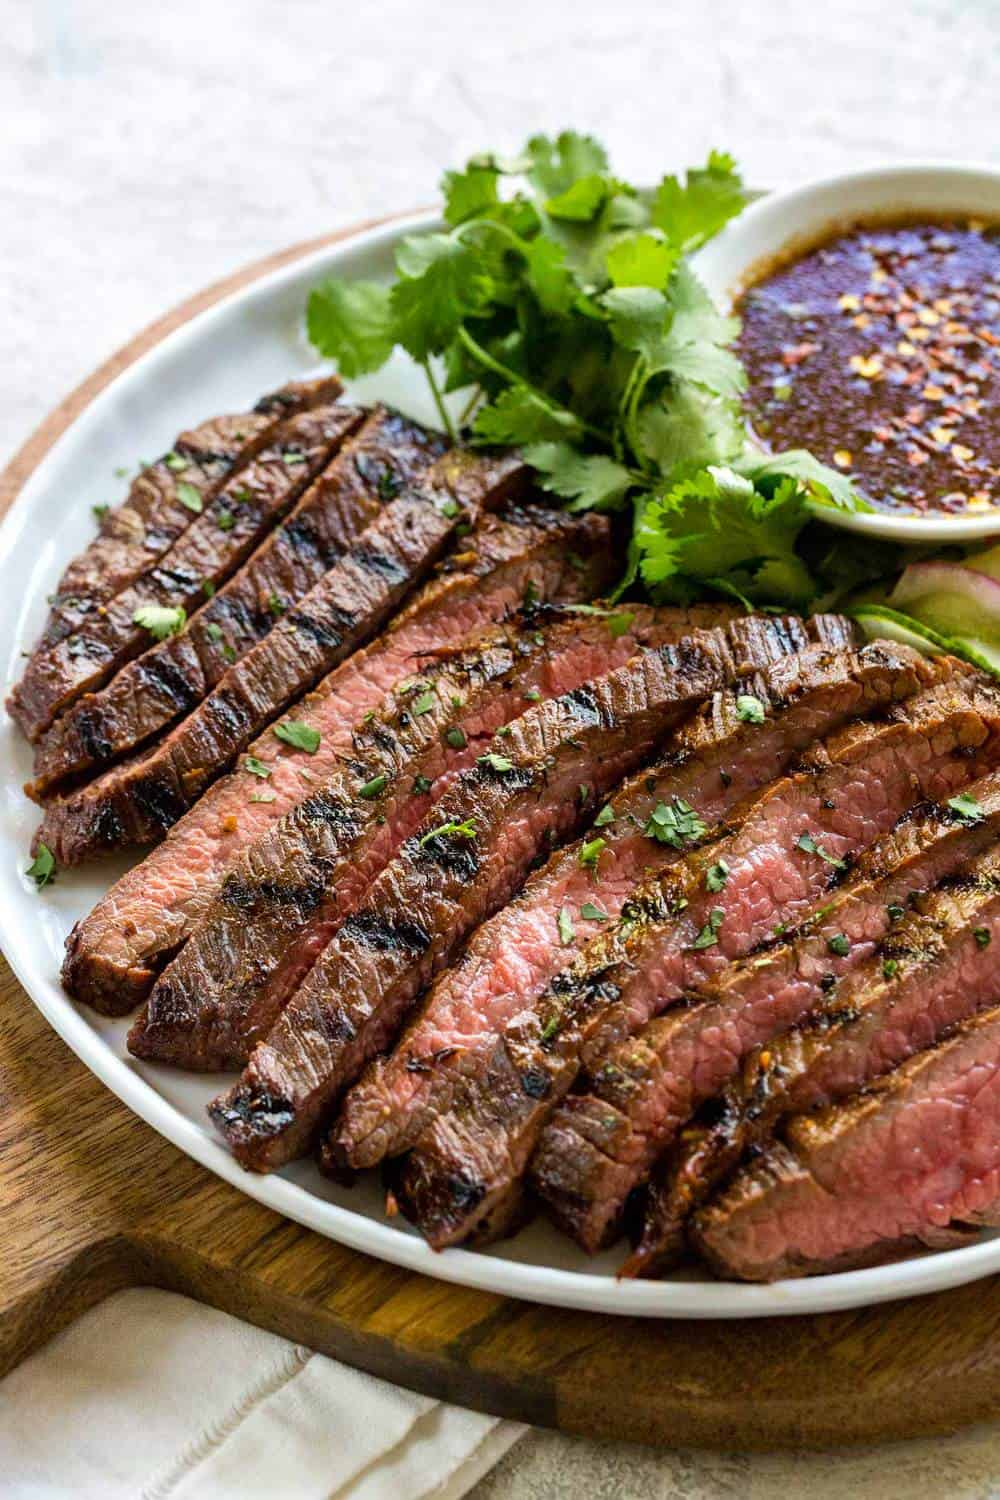 strips of grilled flank steak on a plate served with sauce